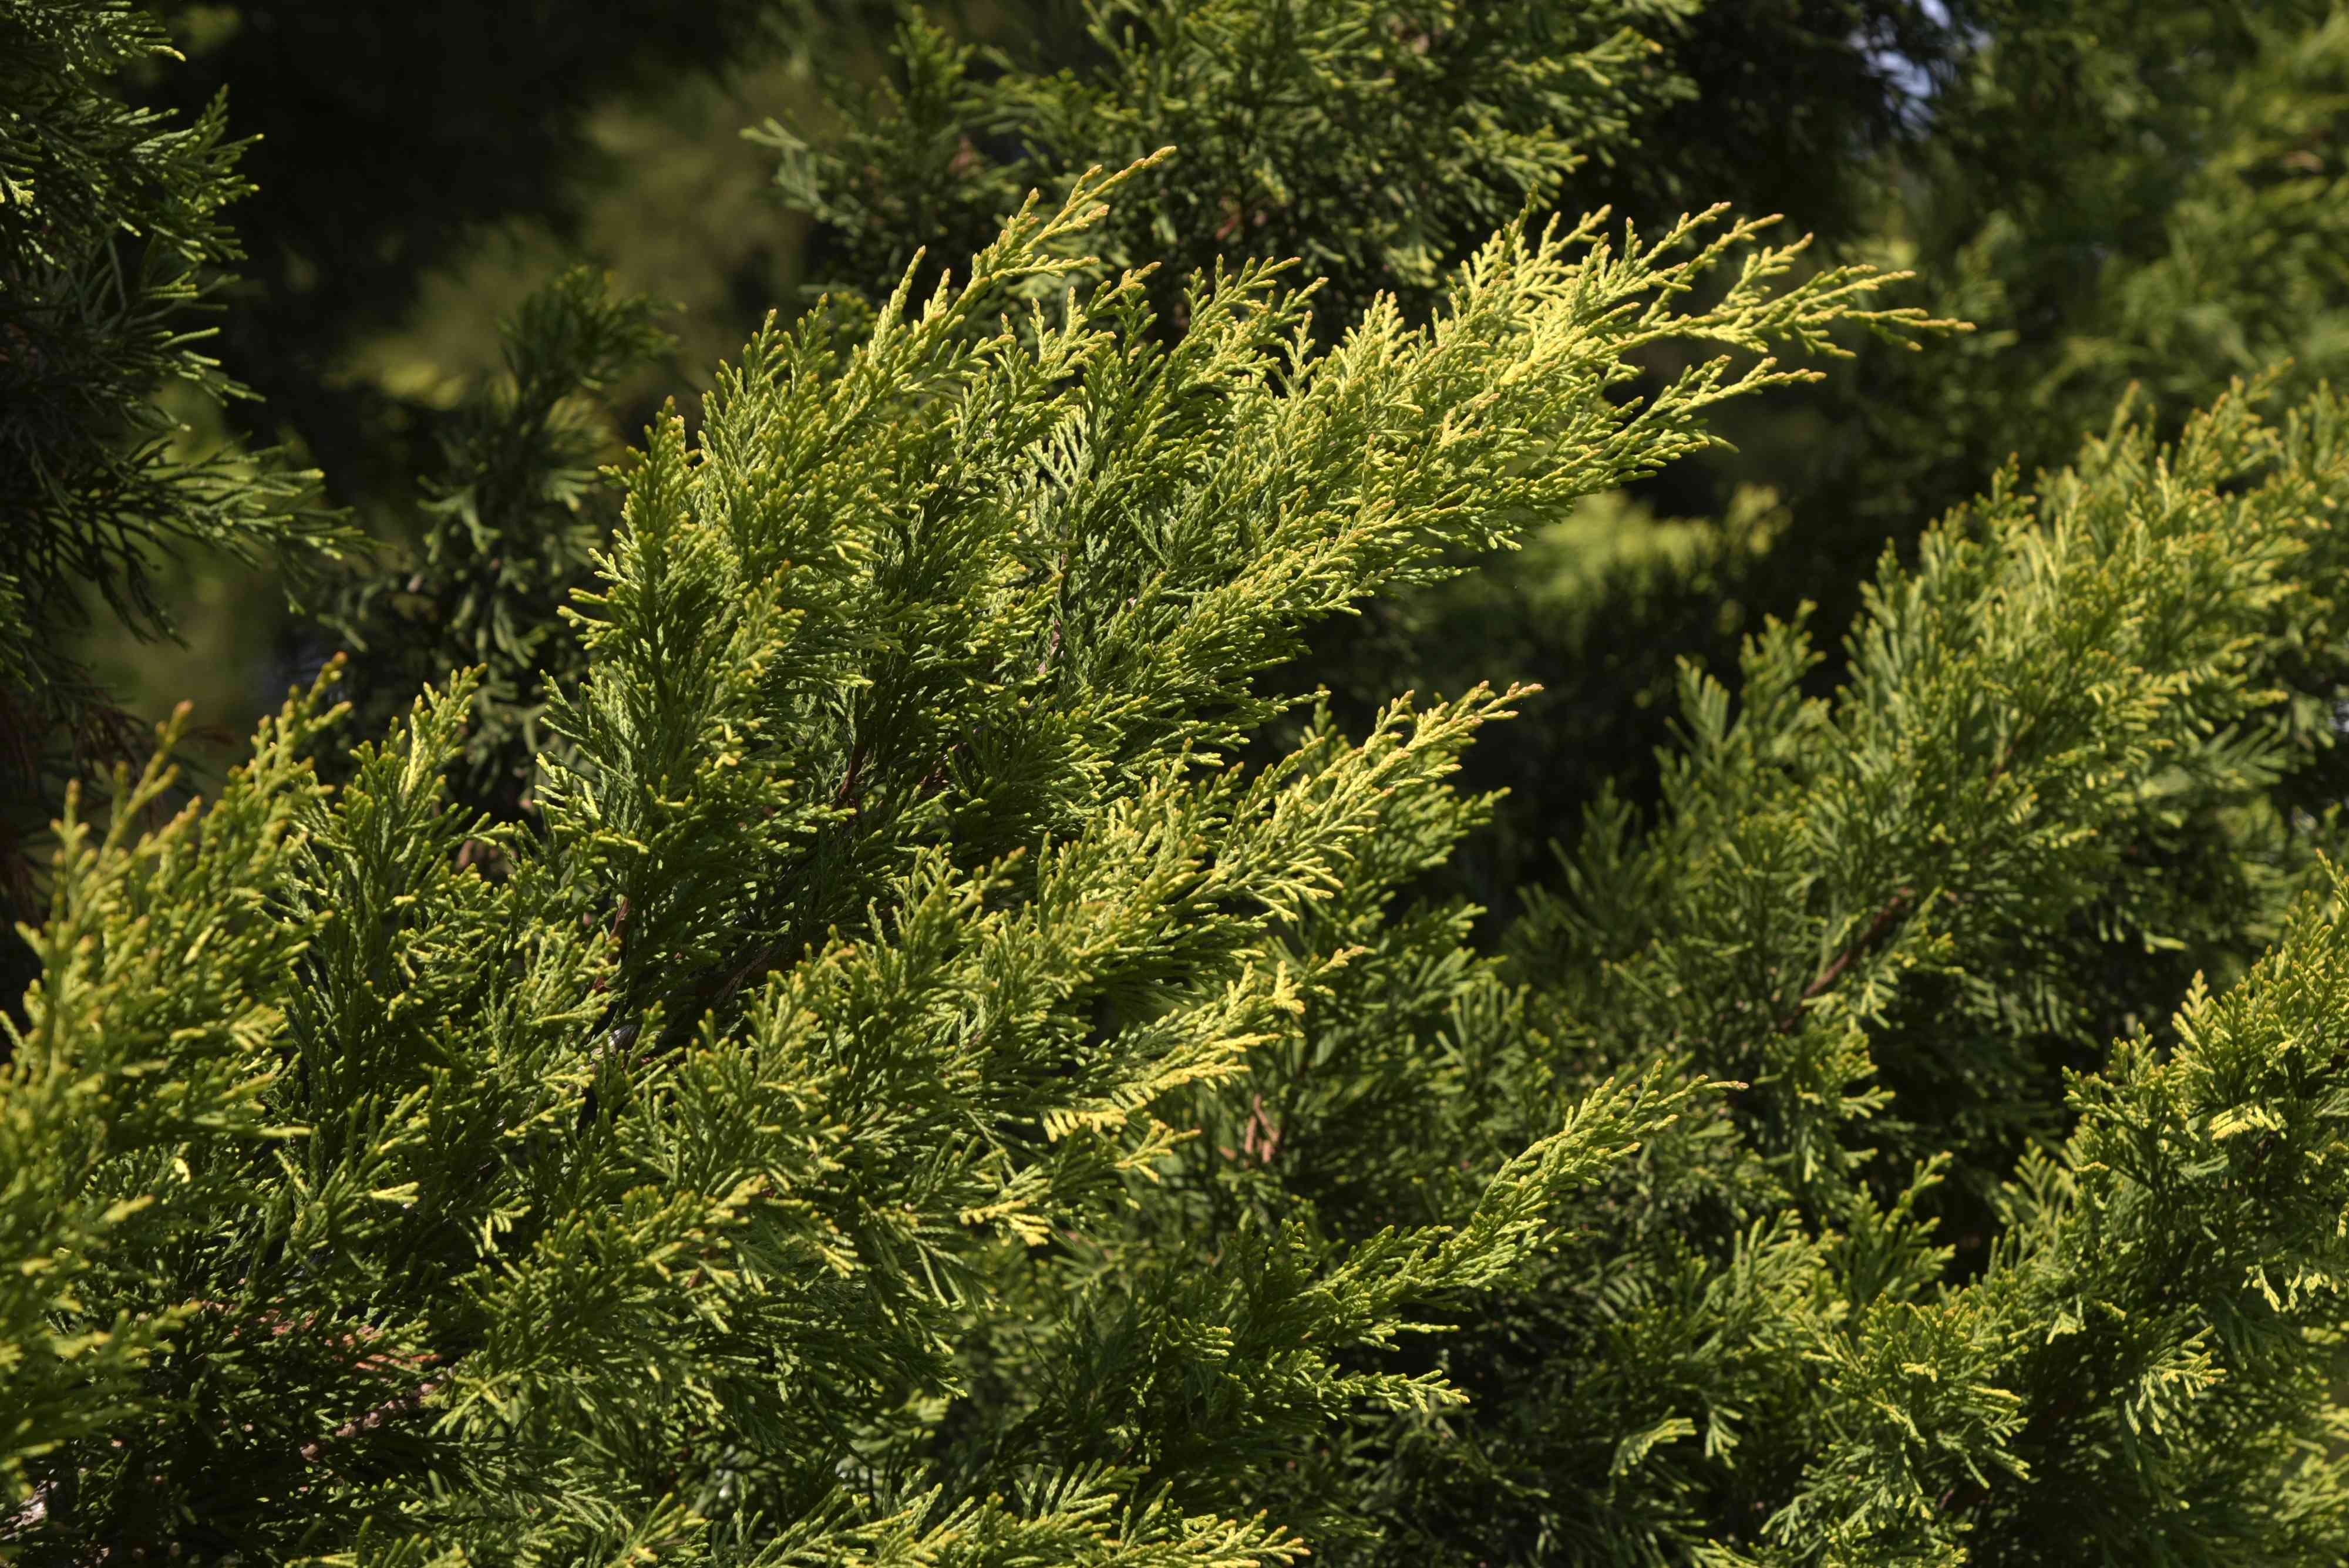 Leyland cypress tree branches with green and green-yellow foliage